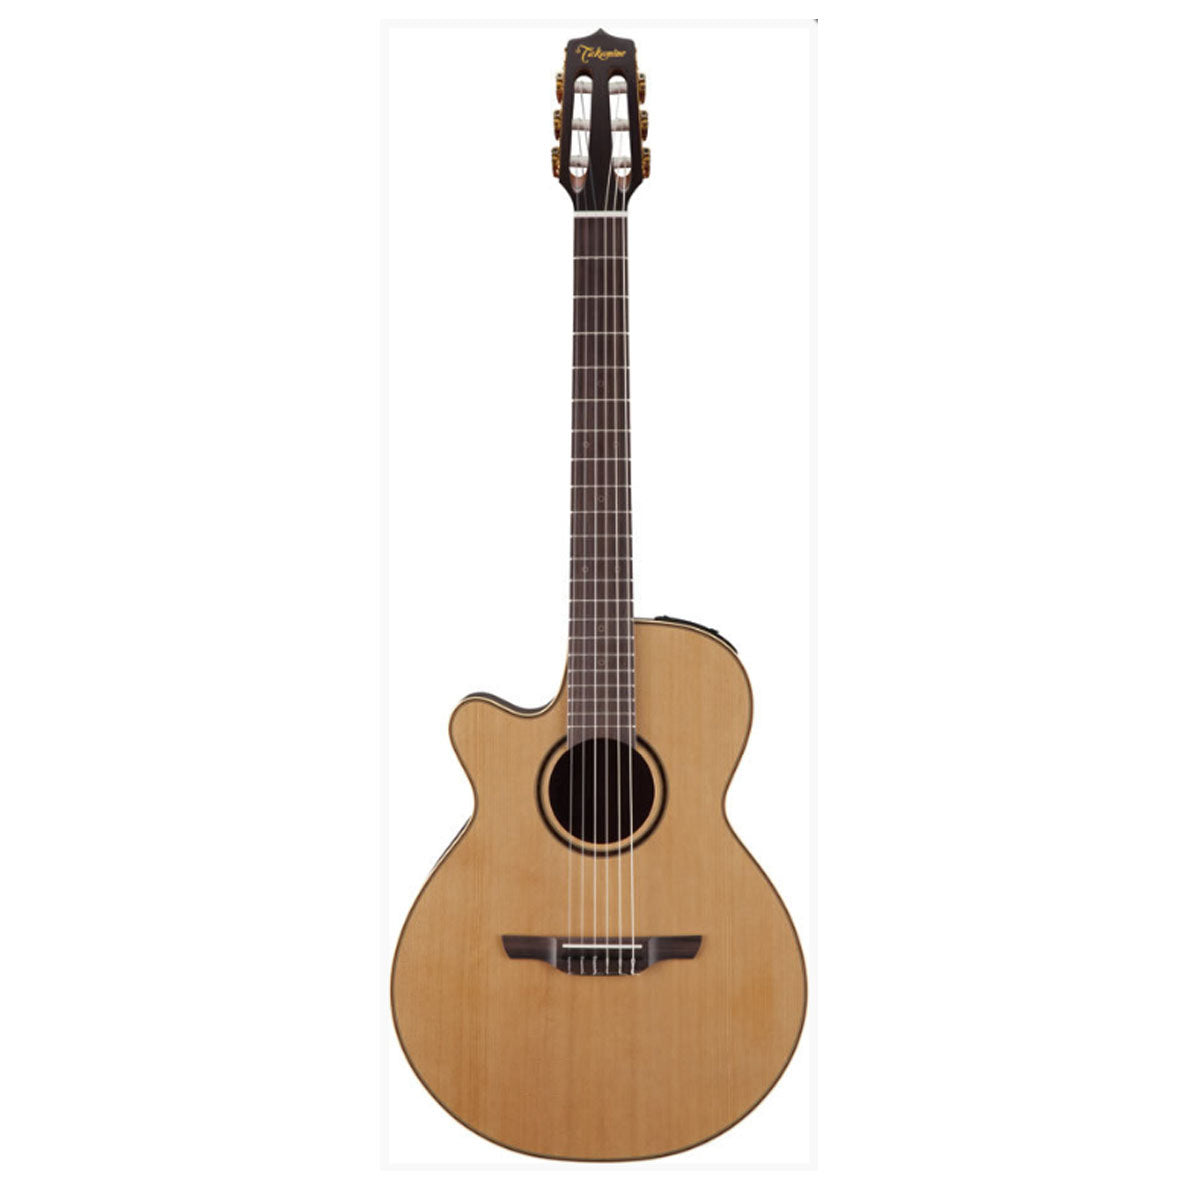 Takamine P3FCN Pro Series 3 Classical Guitar Left Handed FCN Nylon String Natural w/ Pickup